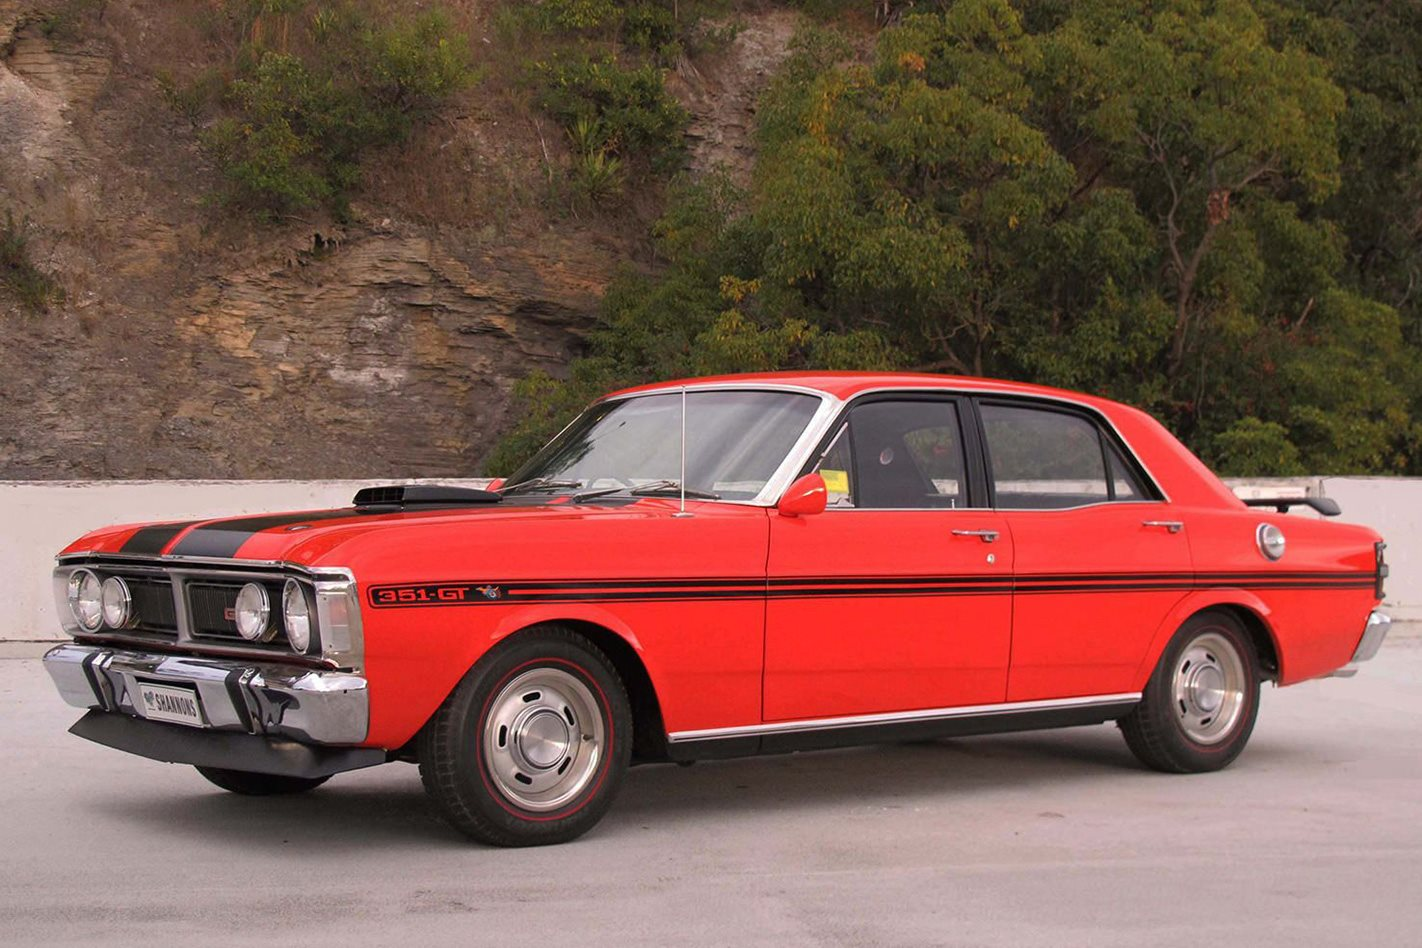 Ford Falcon XYGT